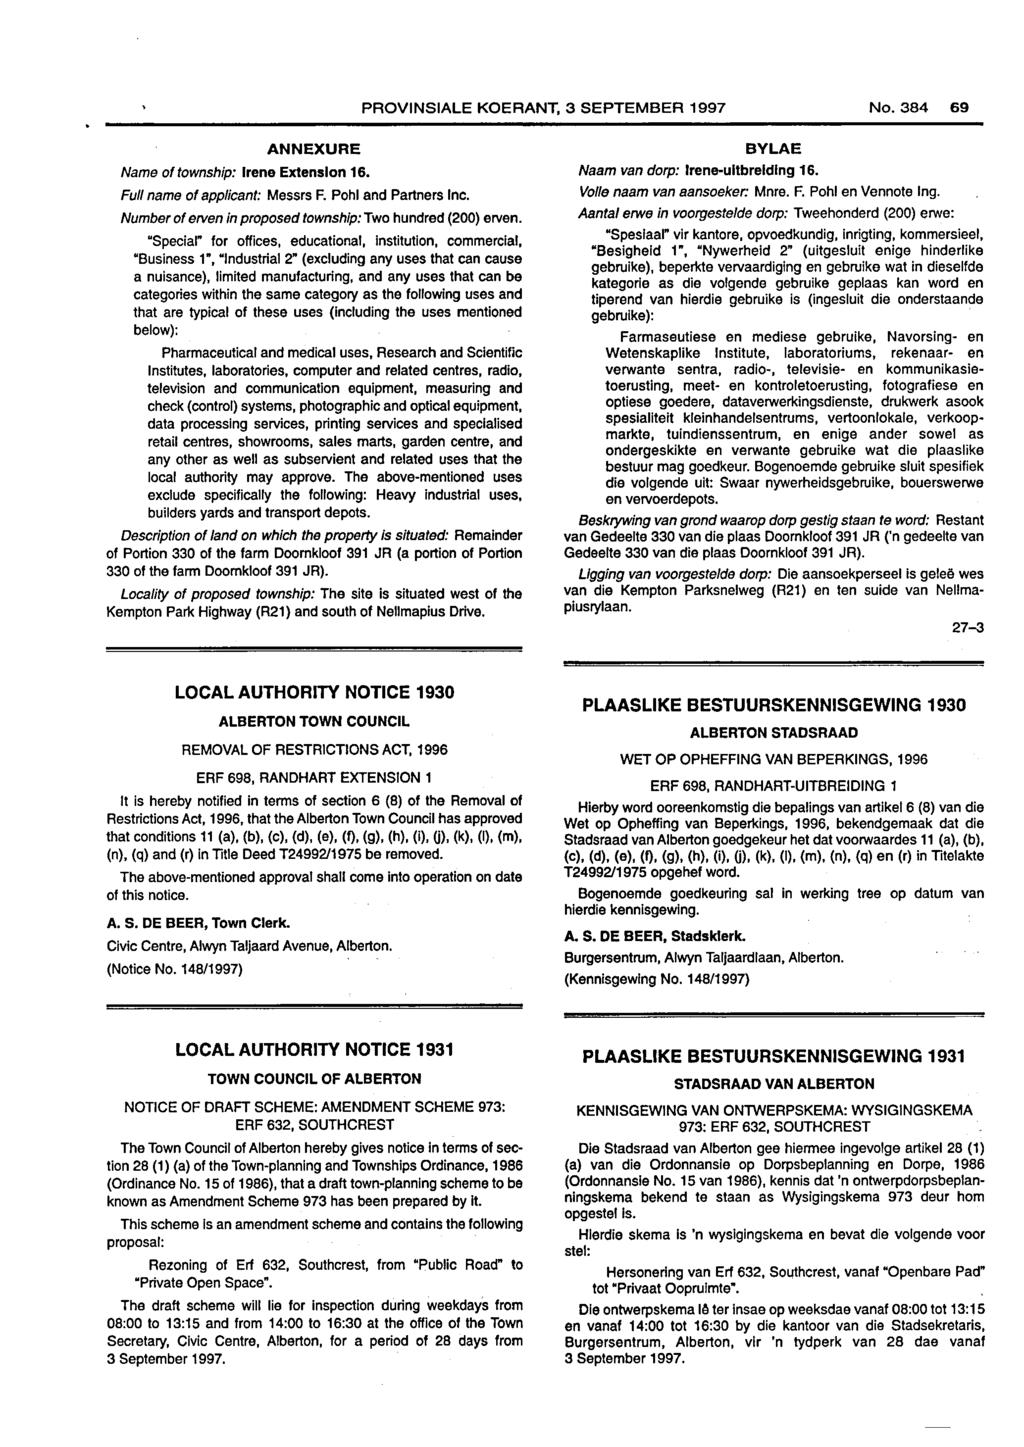 PROVINSIALE KOERANT, 3 SEPTEMBER 1997 No. 69 ANNEXURE Name of township: Irene Extension 16. Full name of applicant: Messrs F. Pohl and Partners Inc.